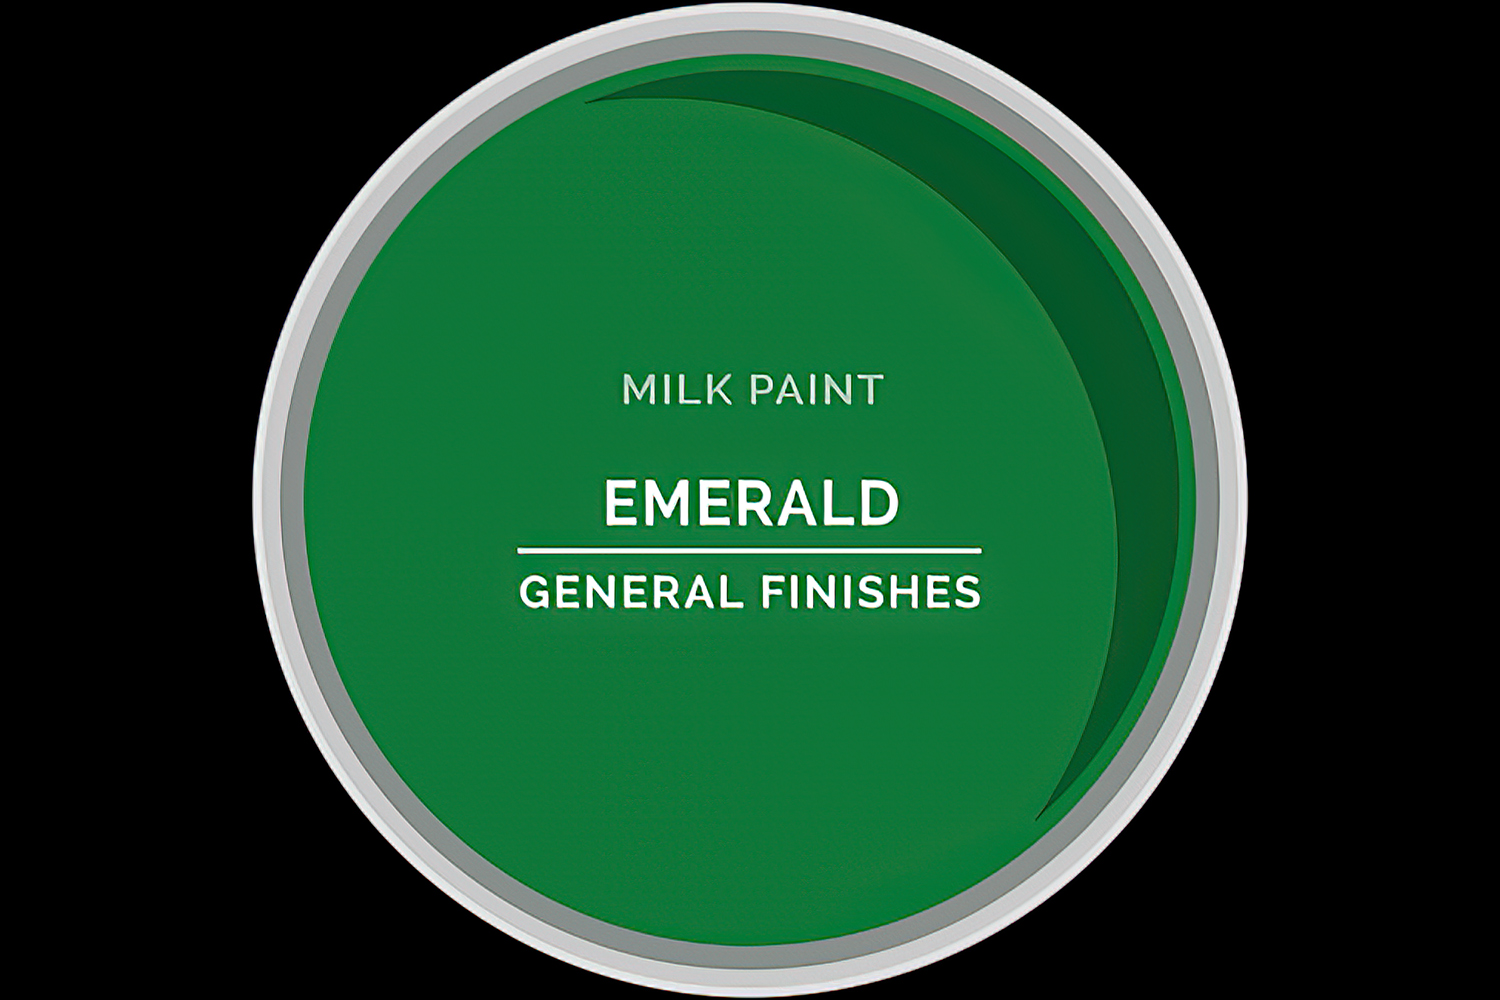 Color Chip Milk Paint EMERALD General Finishes Copy